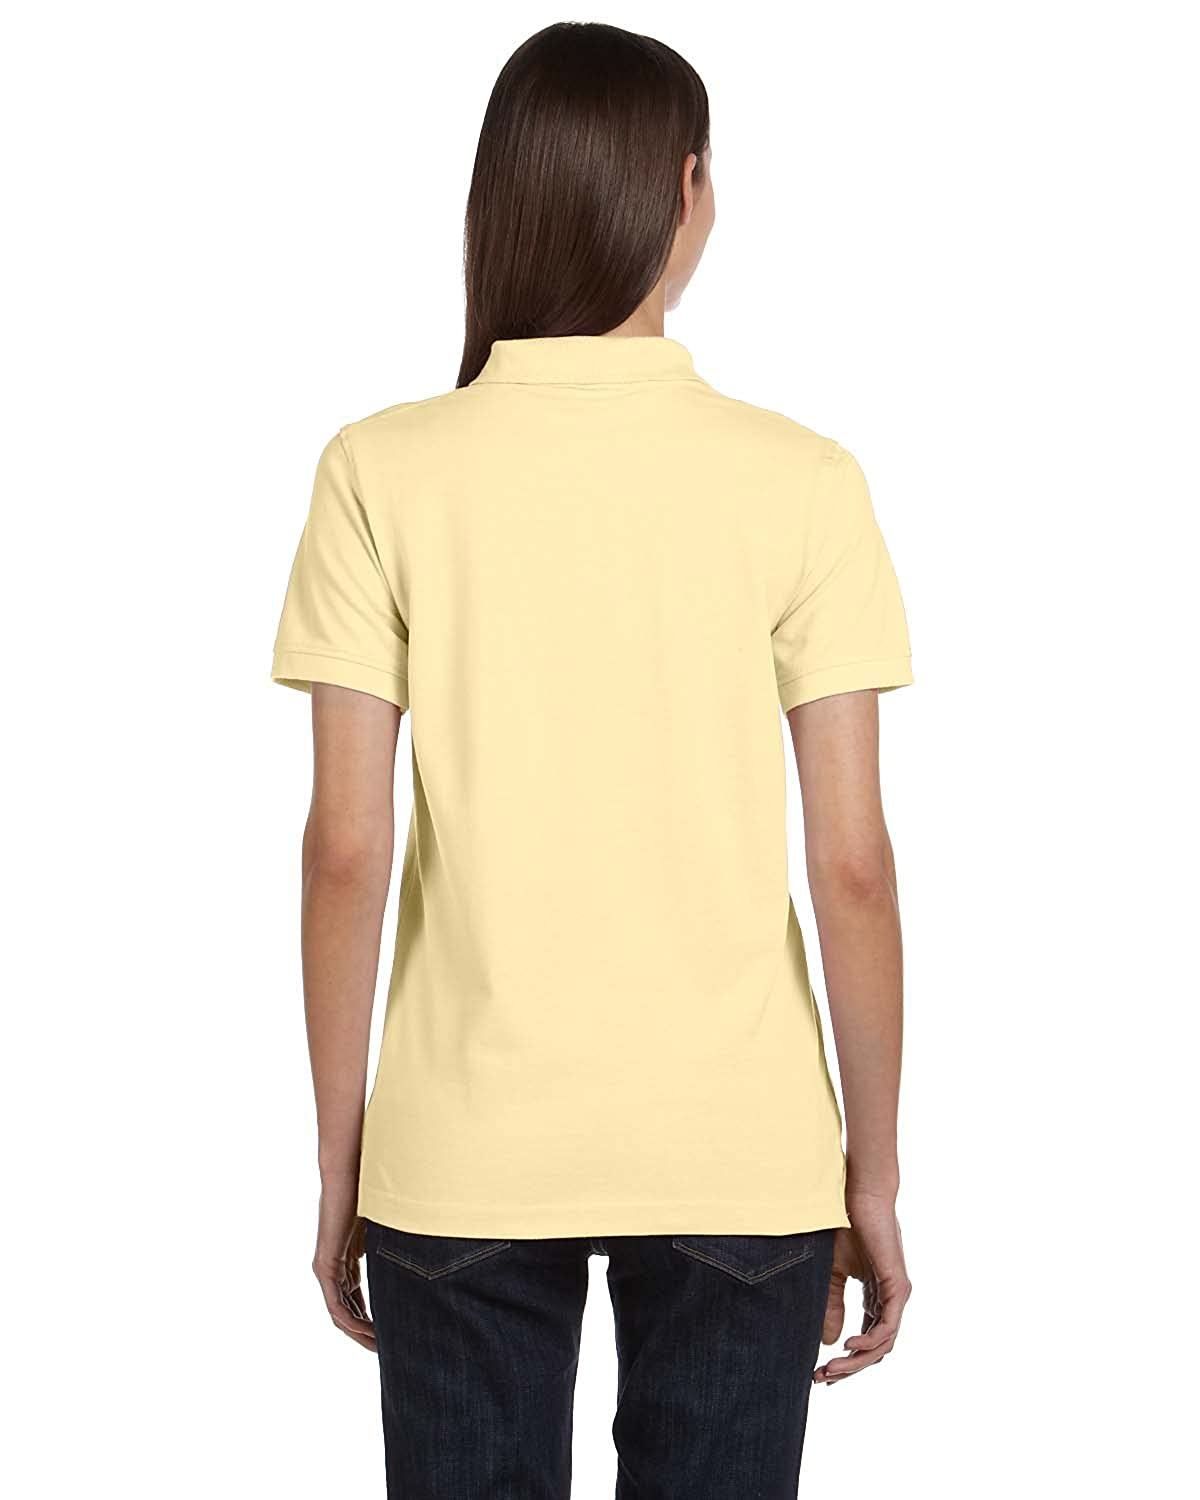 2XL YELLOW HAZE Anvil 8680A Ladies Pique Sport Shirt